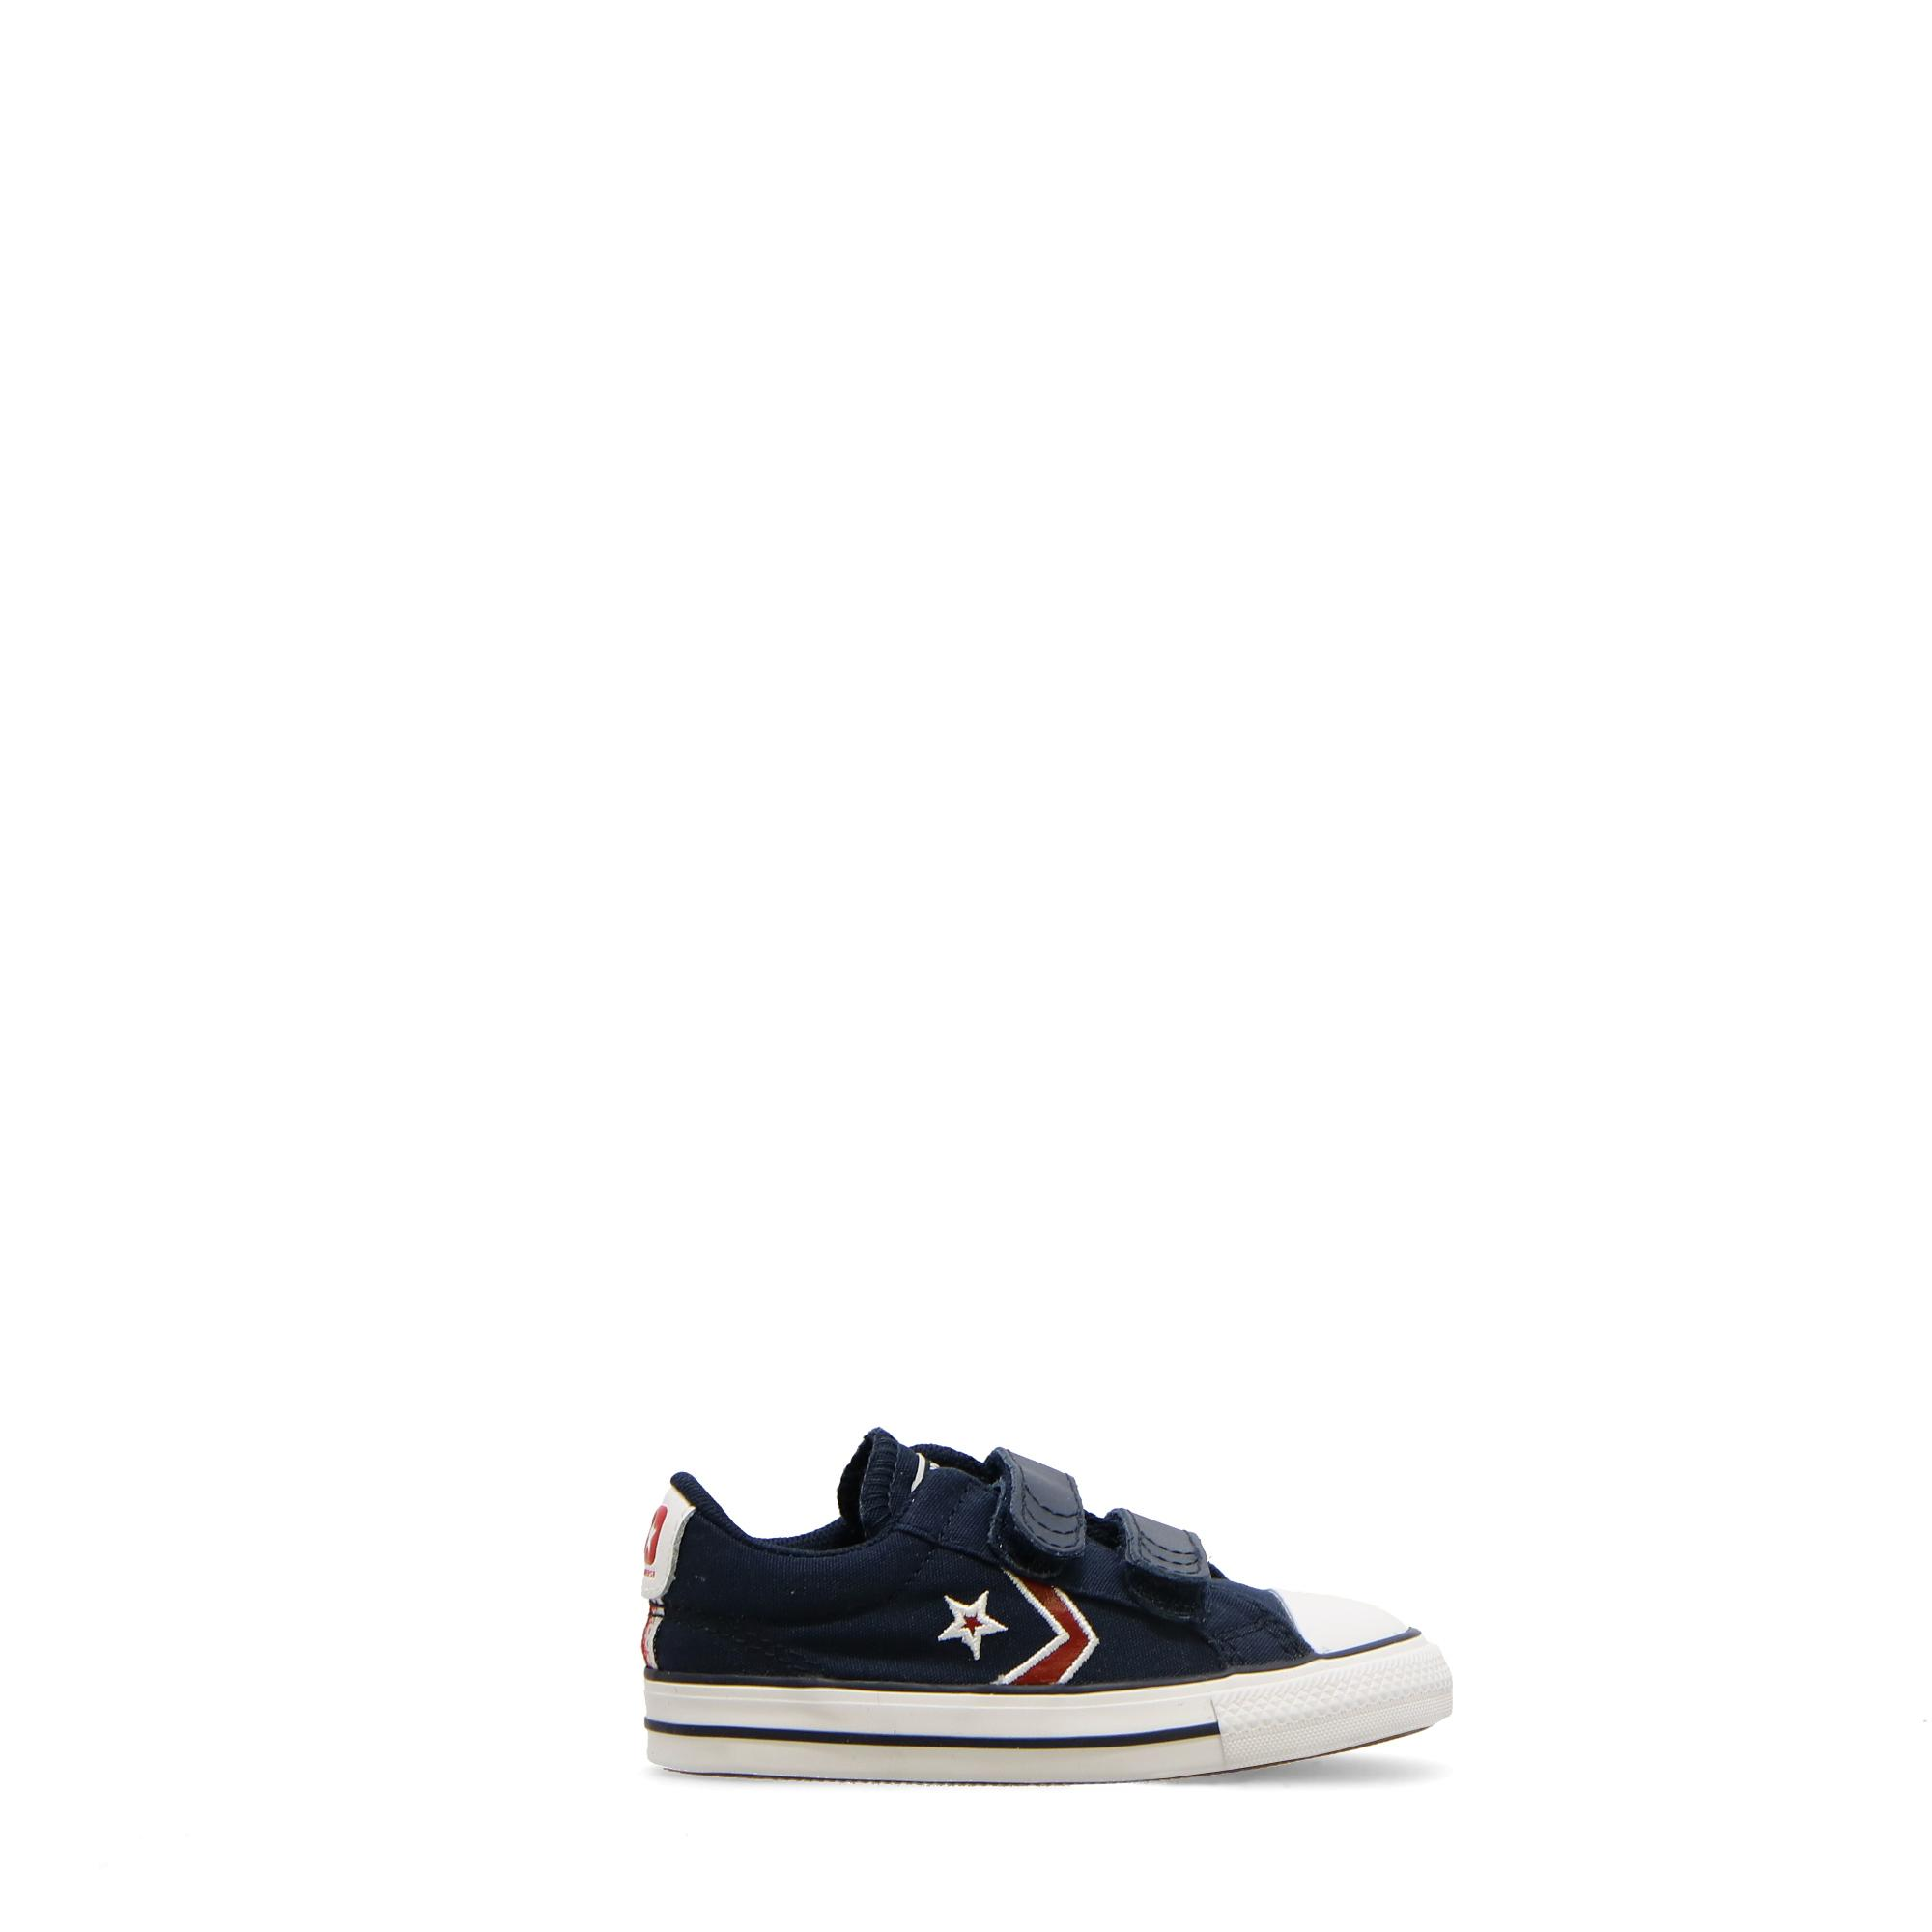 Converse Star Player 2v Embroidered Ox Obsidian university red